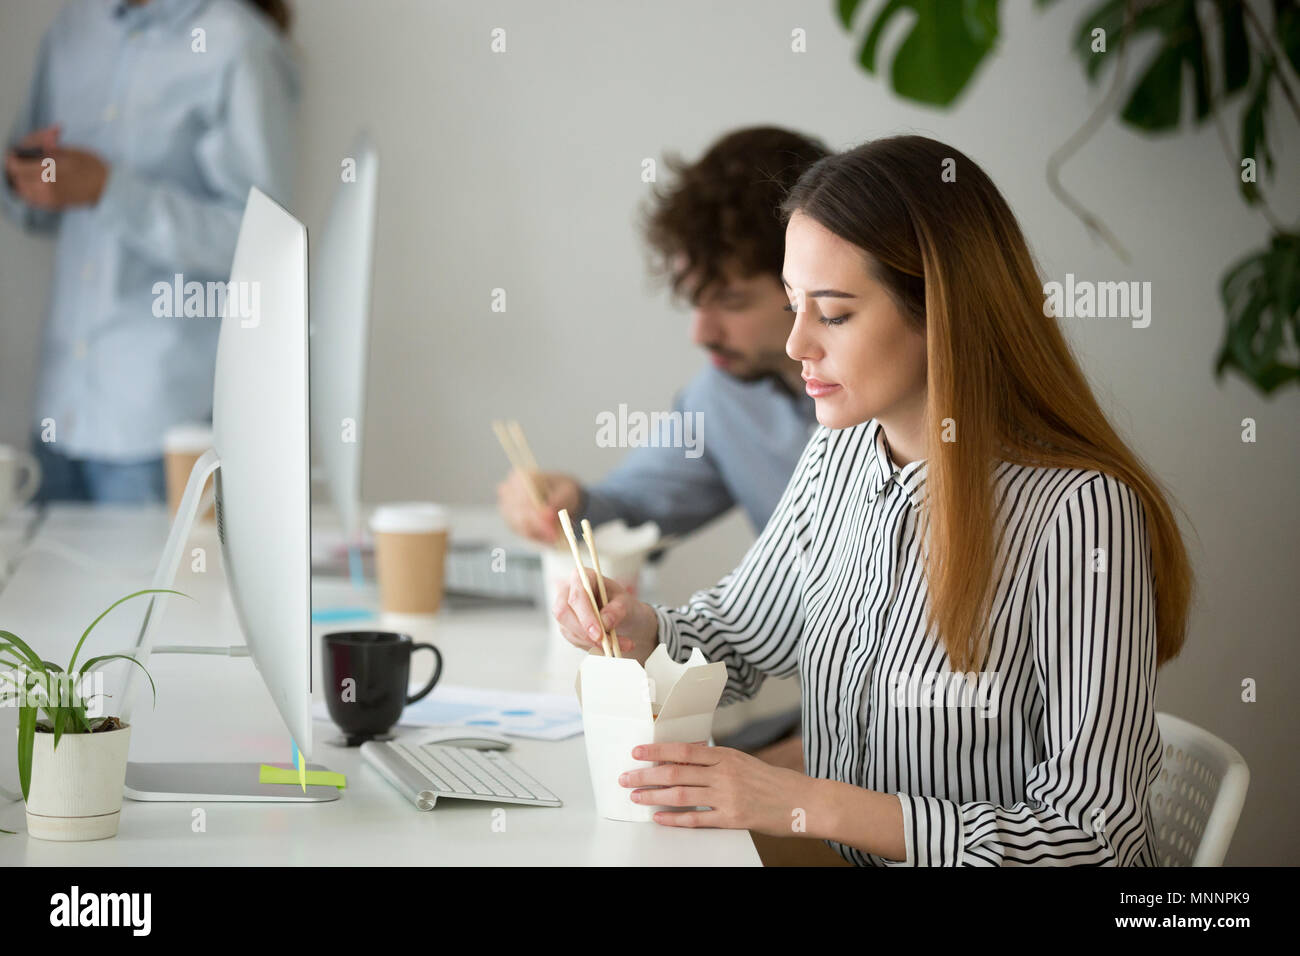 Young woman enjoying chinese food box during office lunch break - Stock Image